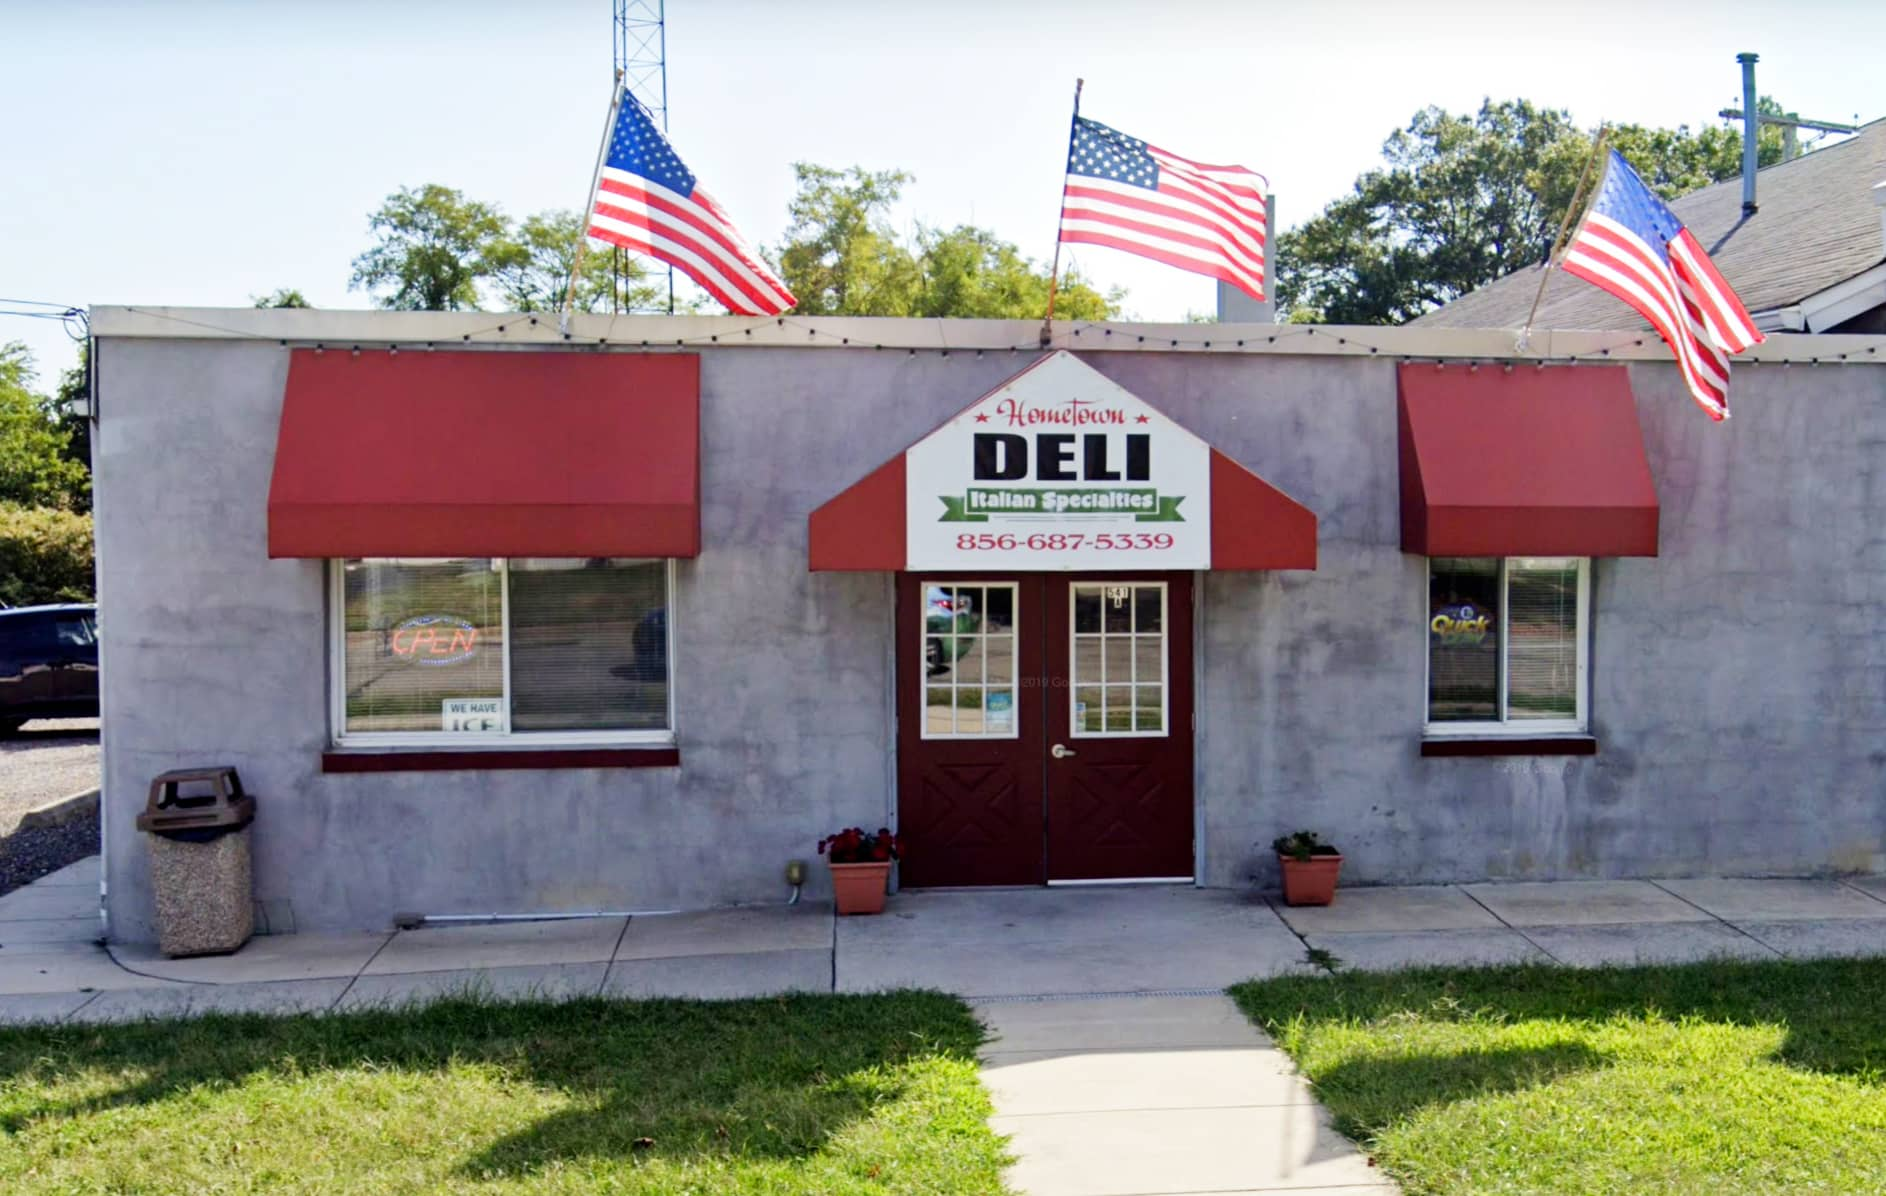 $100 million NJ deli firm was delisted for irregularities in corporate disclosures